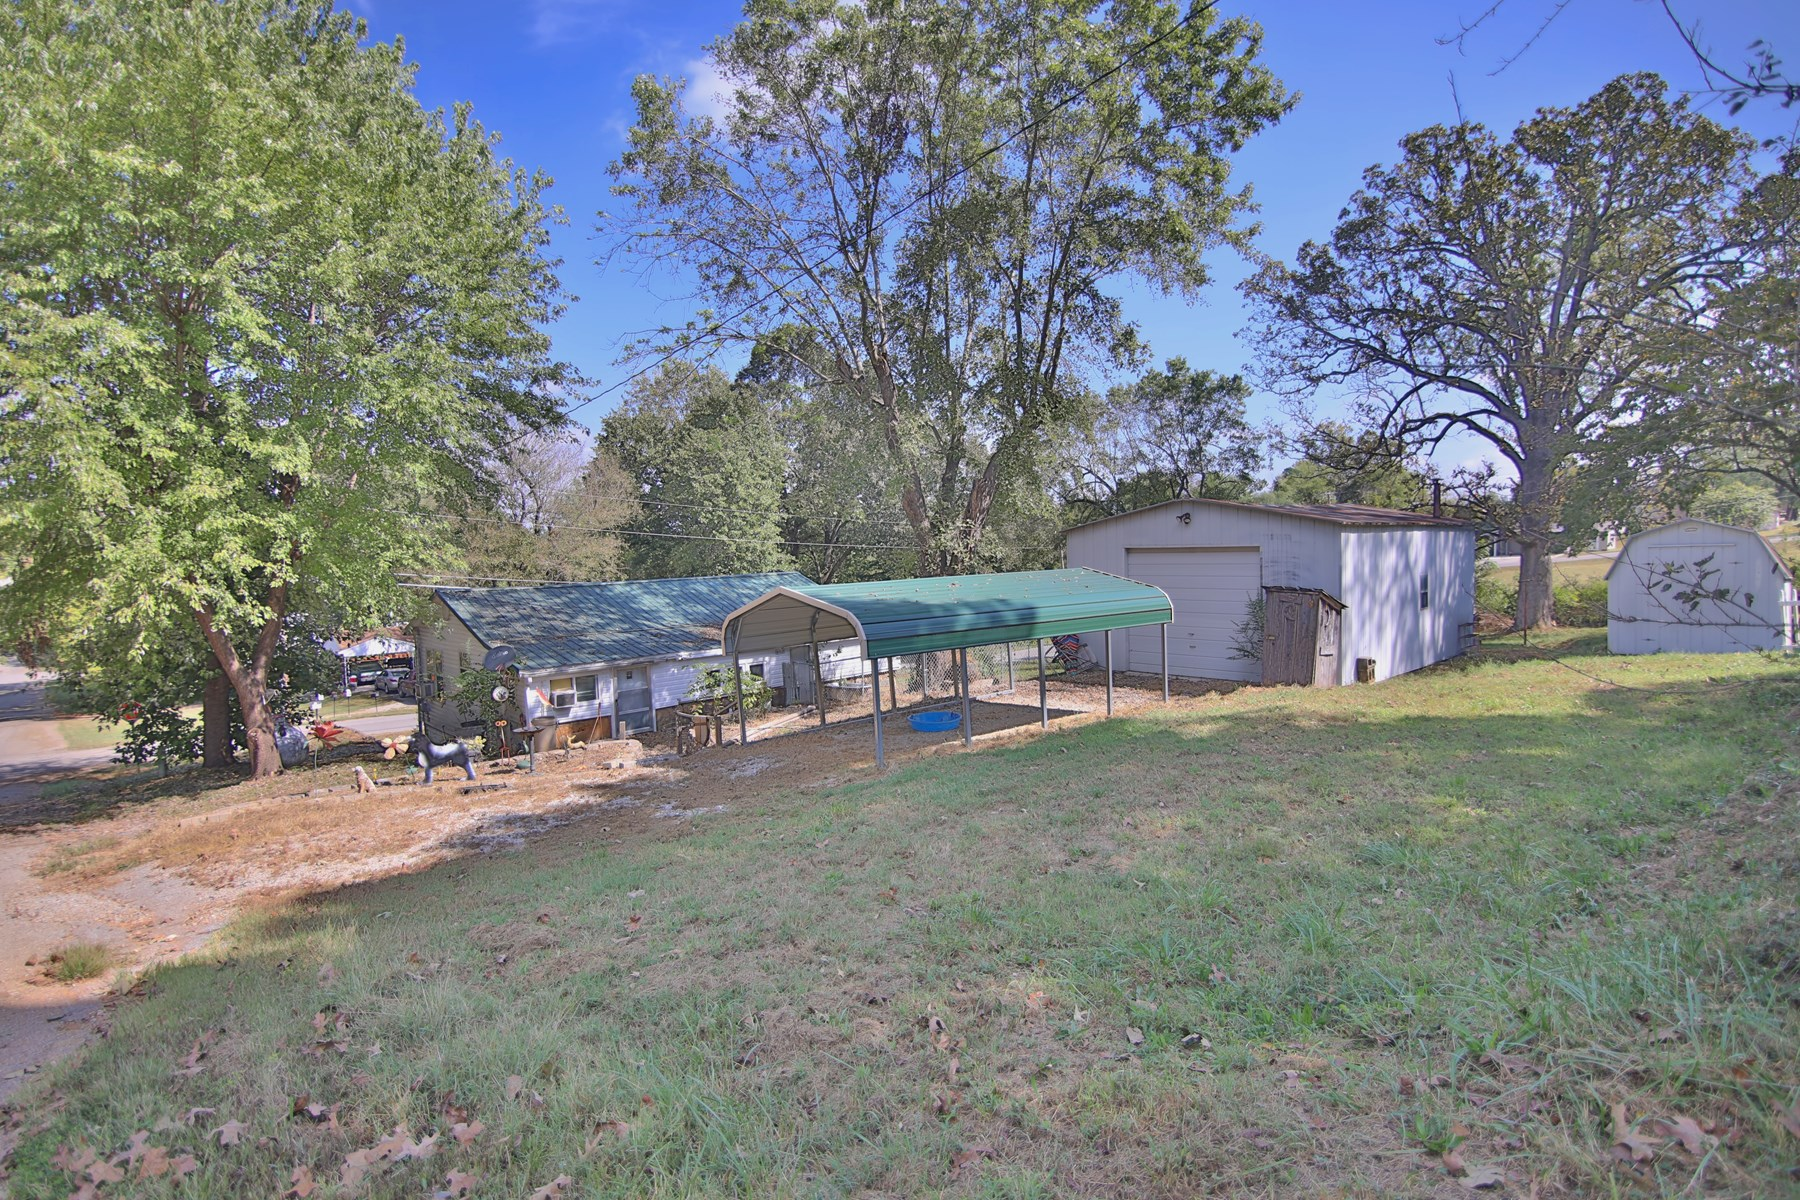 Home for Sale in Mammoth Spring Arkansas